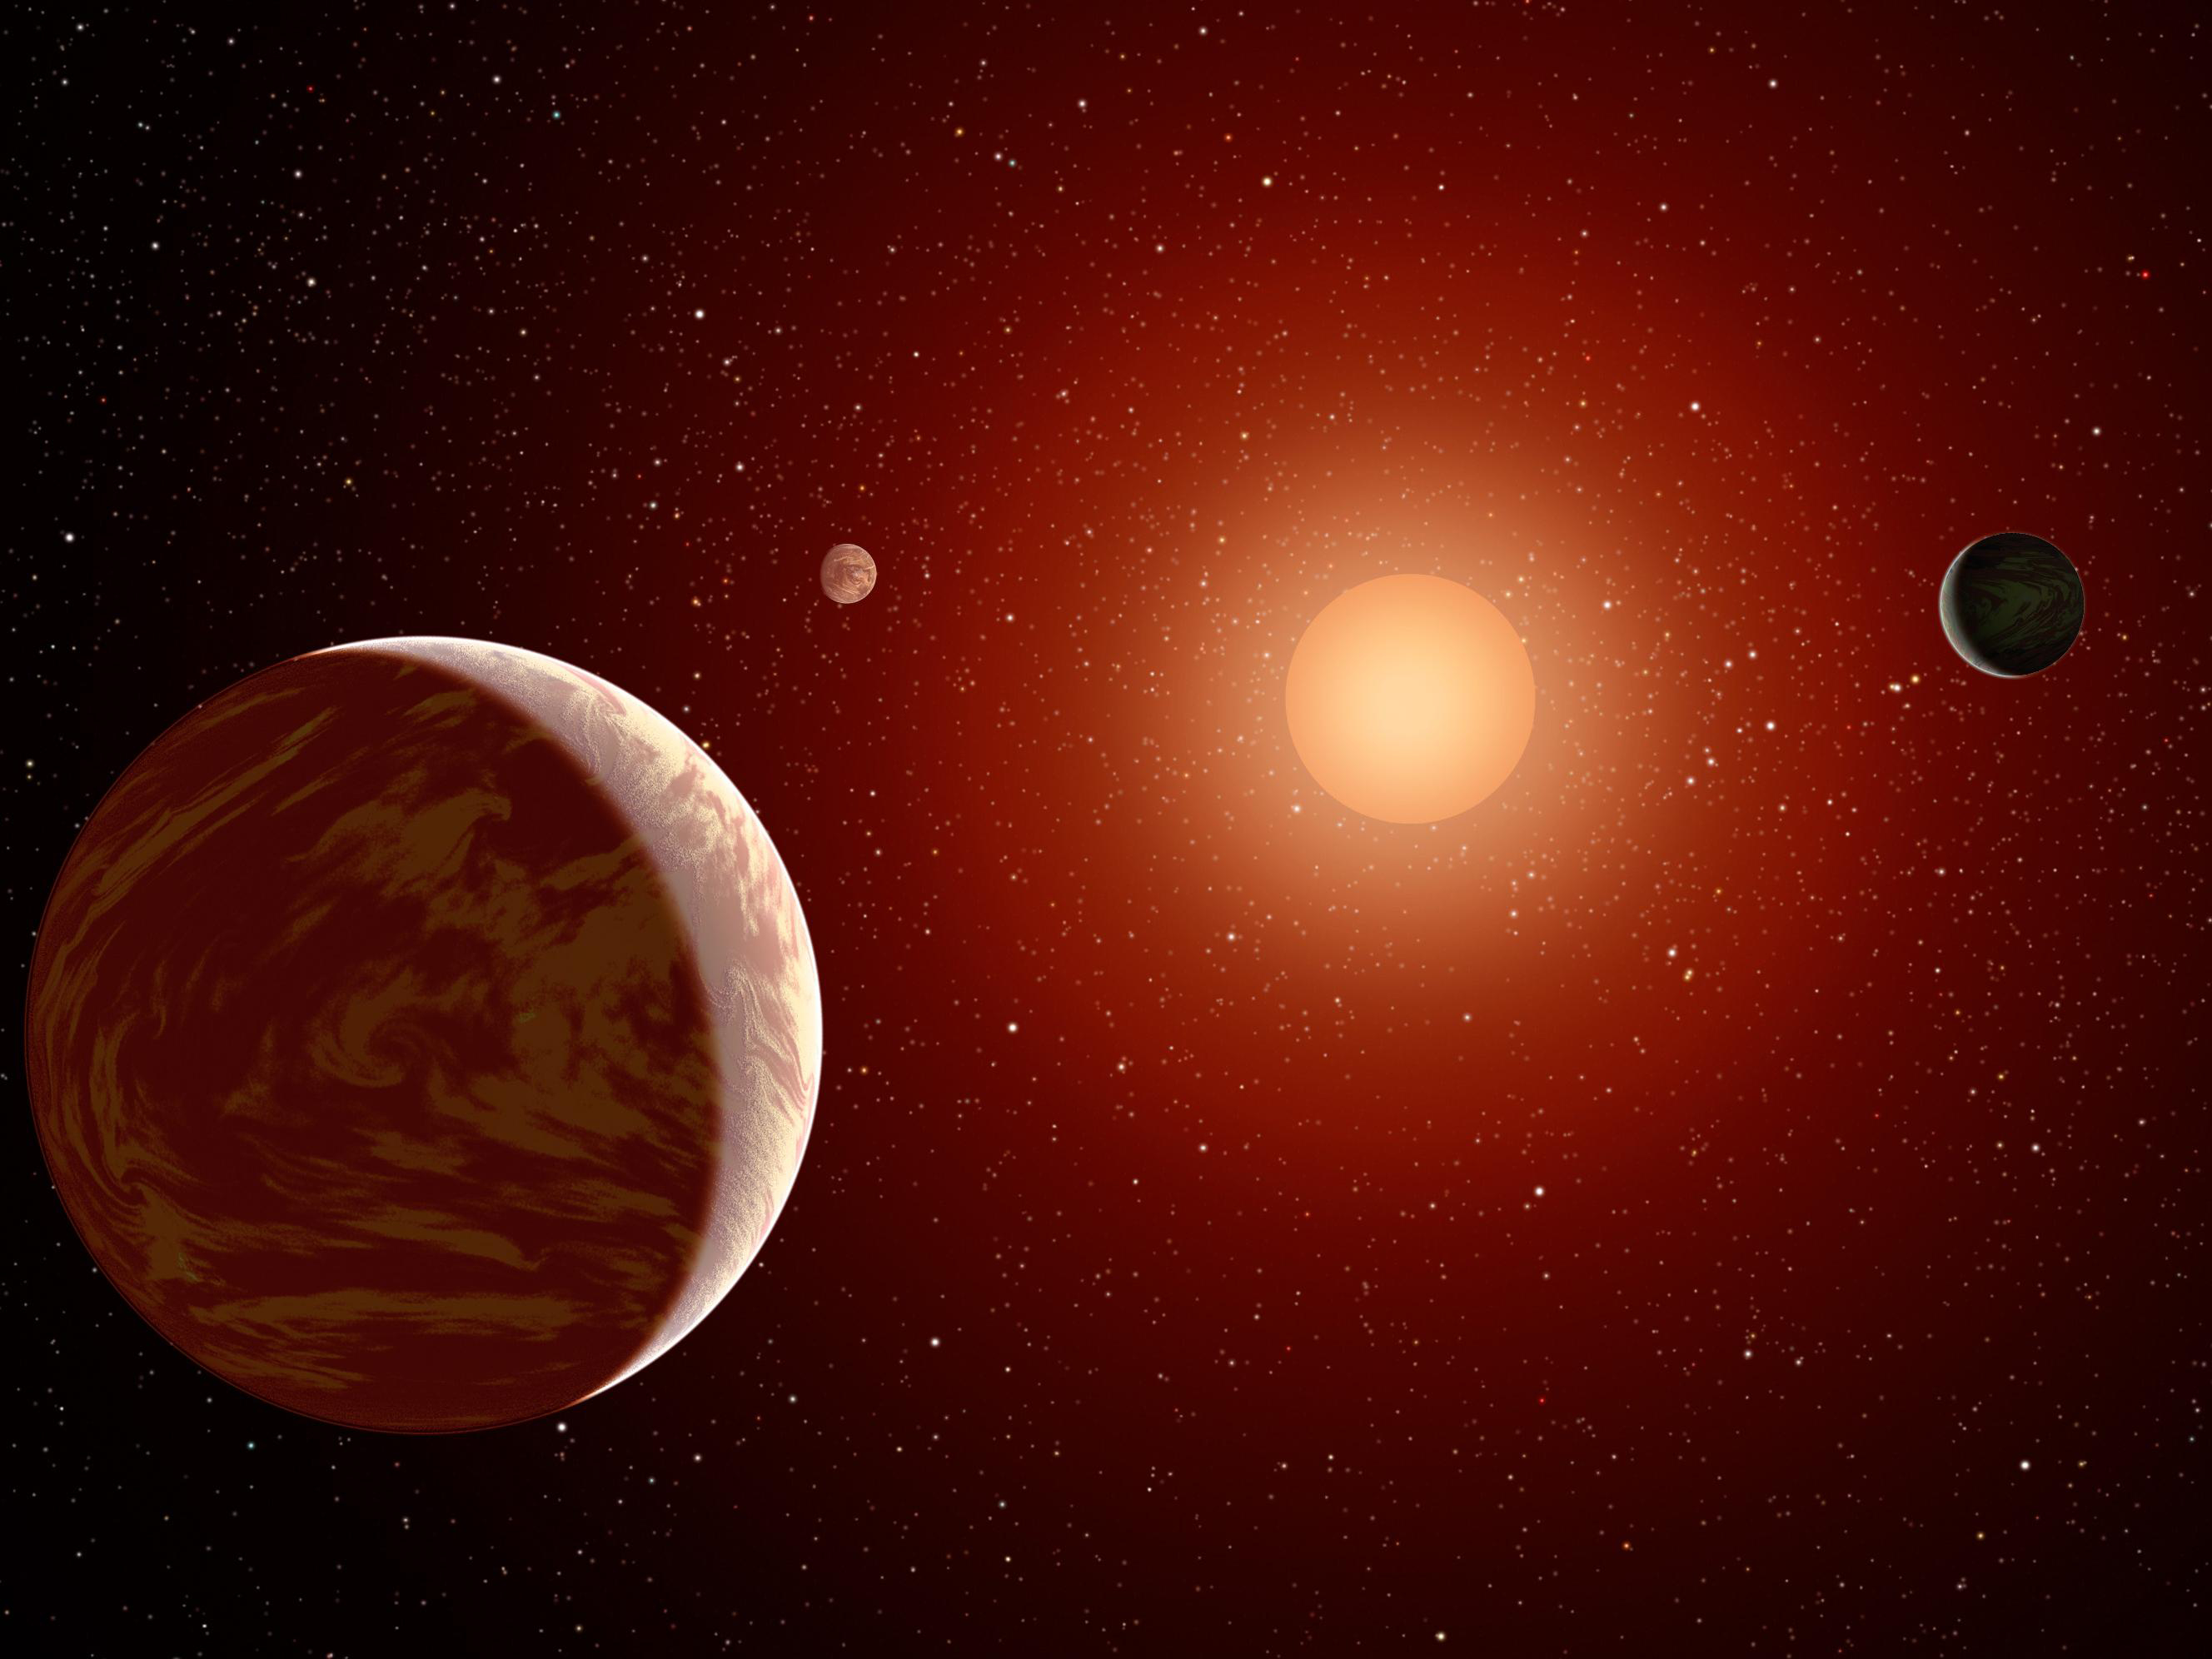 Trappist-exoplanets